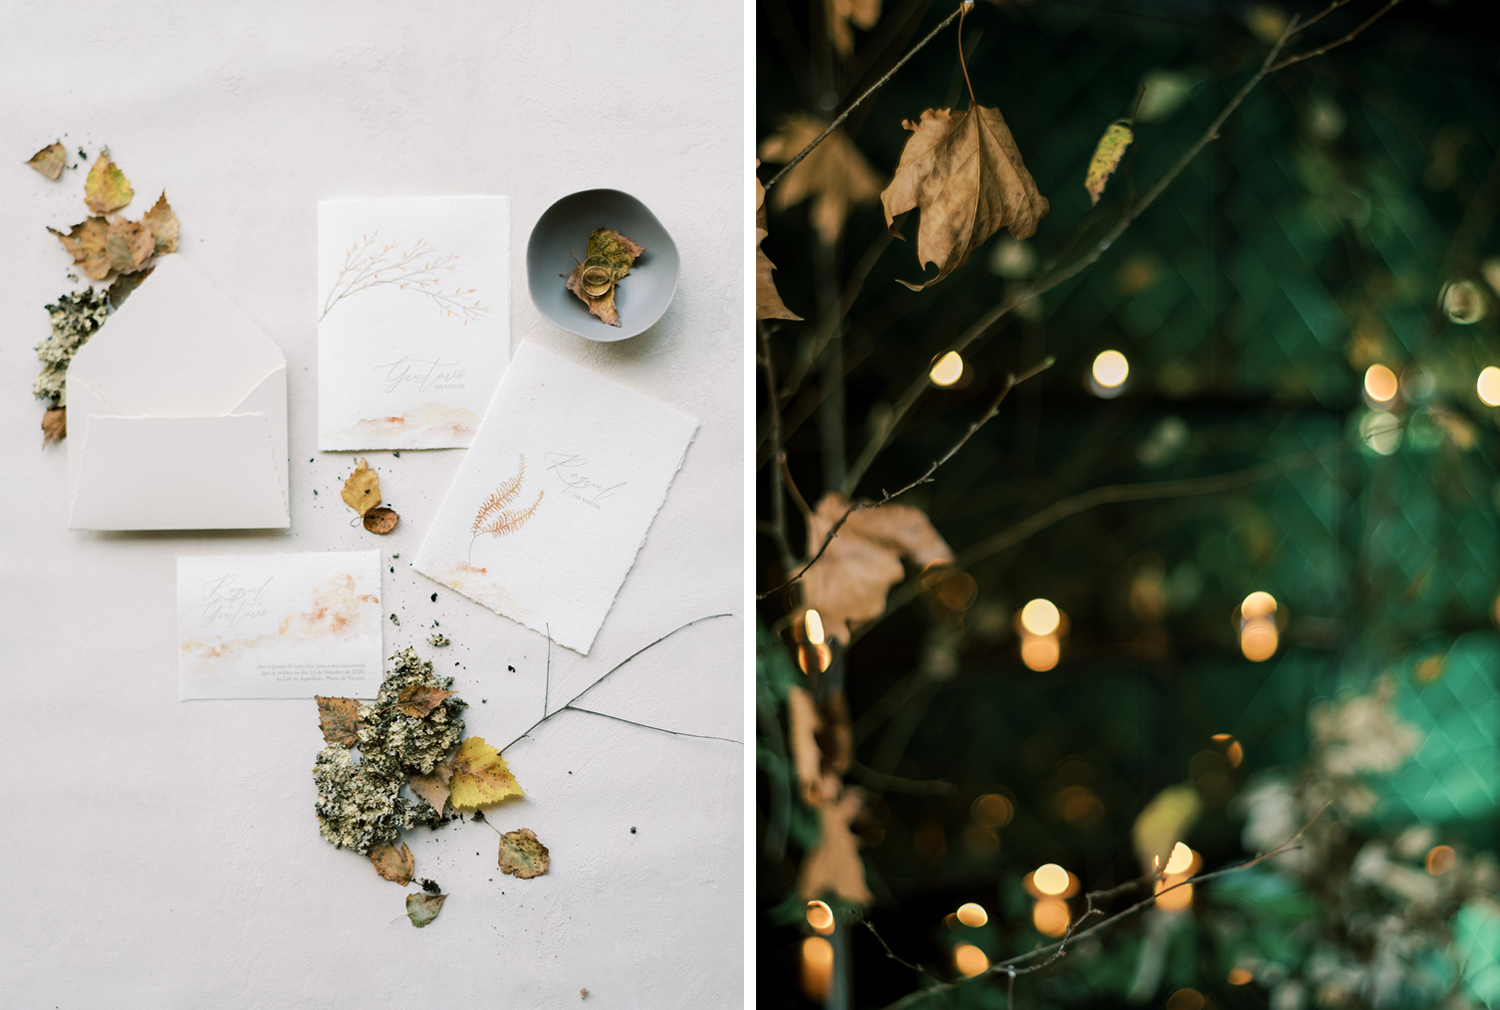 Wedding stationery inspiration at Something Blue workshop, creative direction and styling by Brancoprata